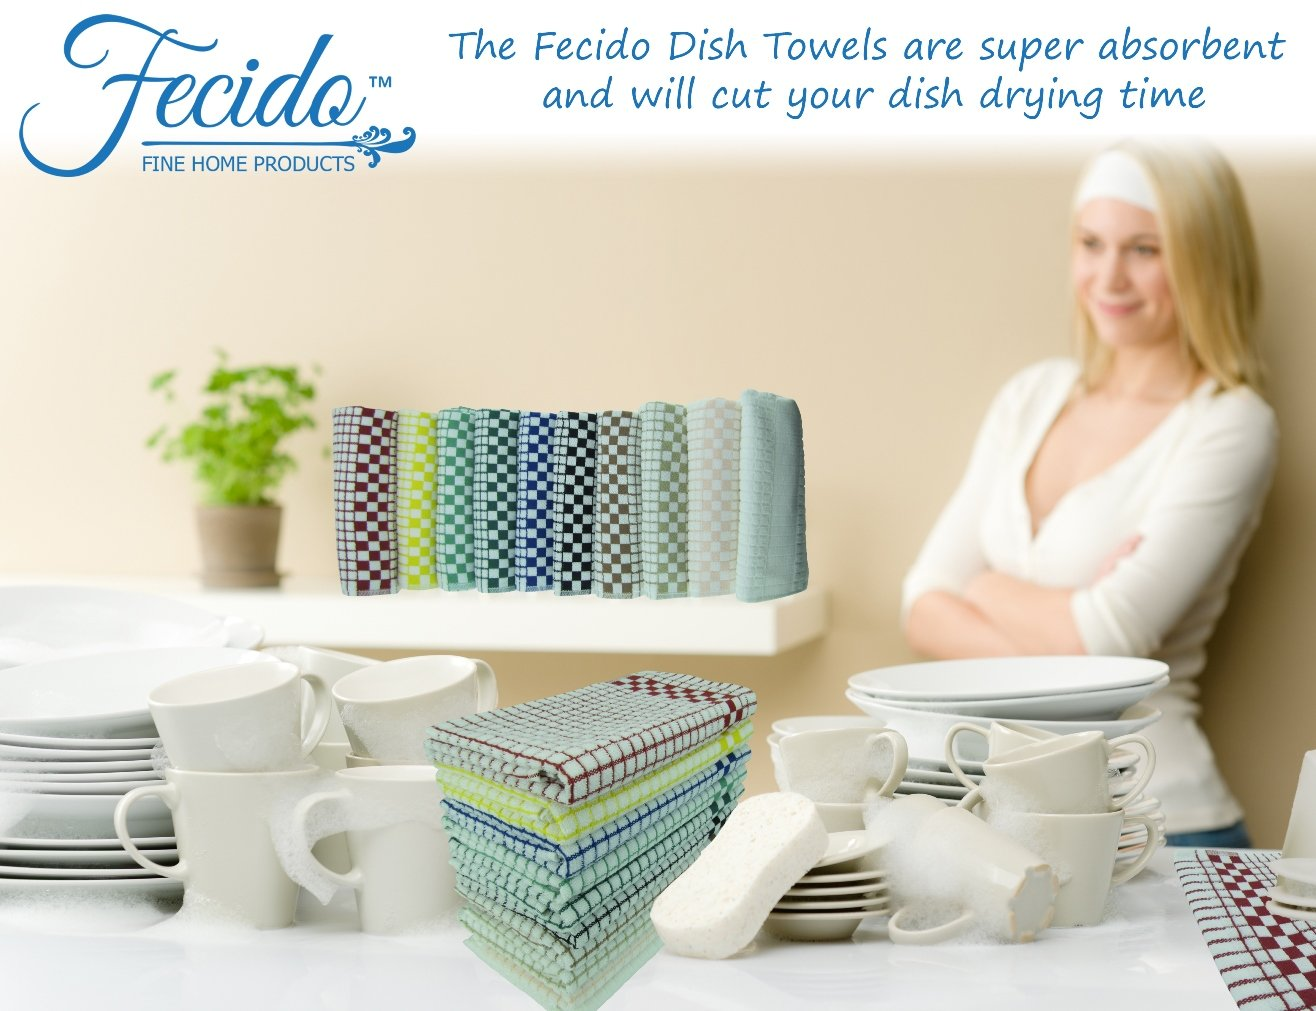 Fecido Classic Dark Kitchen Dish Towels with Hanging Loop European Made 100/% Cotton Tea Towels 10 Pack Multi Color Heavy Duty Absorbent Dish Clothes